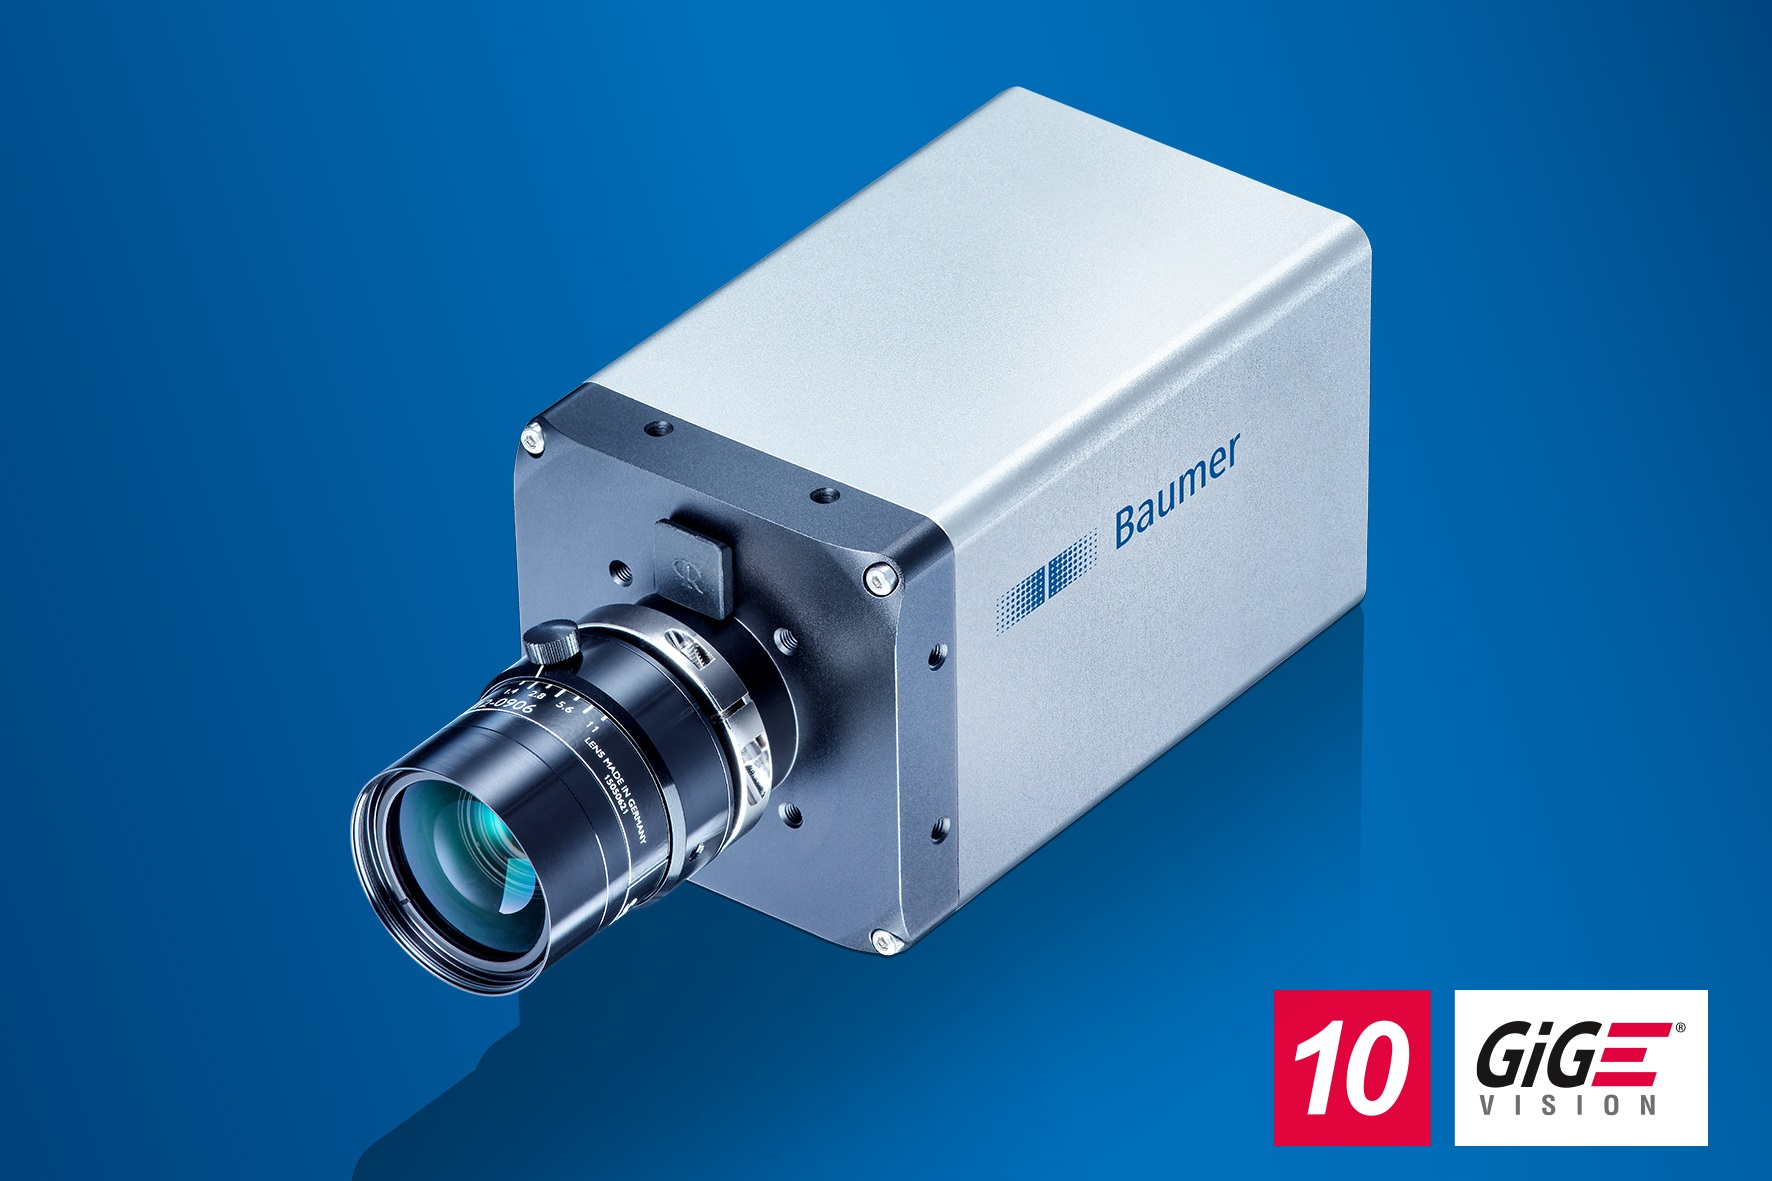 Baumer presents eight new models of the LX series which thanks to latest Sony Pregius sensors and 10 GigE interface offer supreme image quality at high speed together with easy system integration.